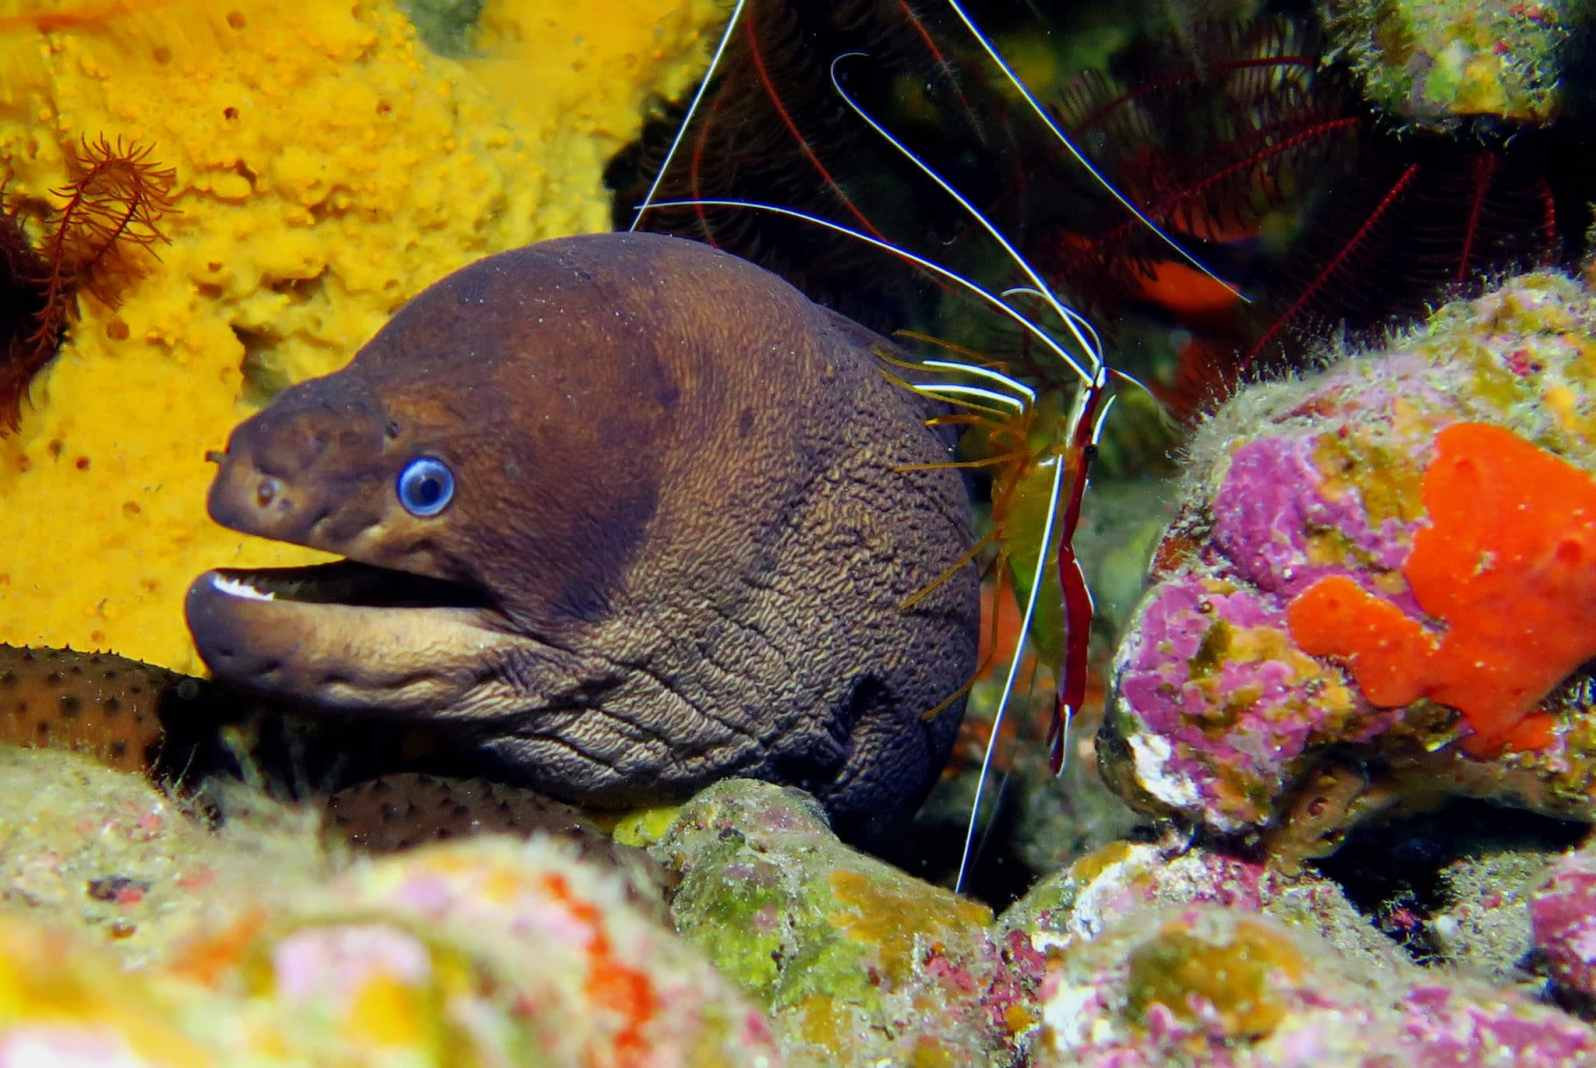 Dark morray eel scuba diving Tenerife Canary Islands